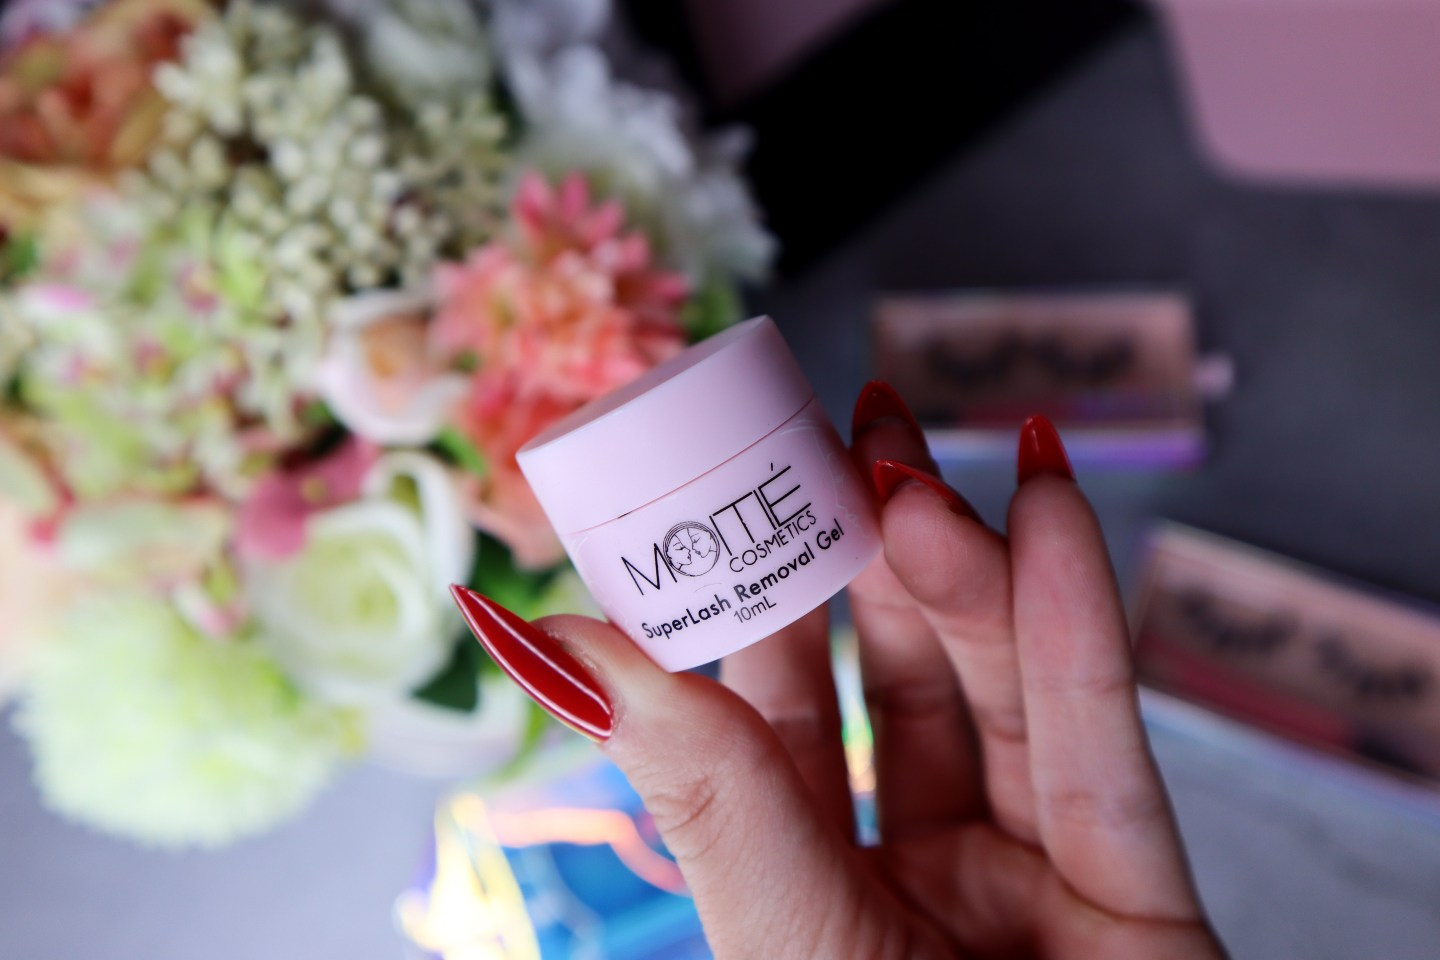 The Moitie 10-Day SuperLash Removal Gel